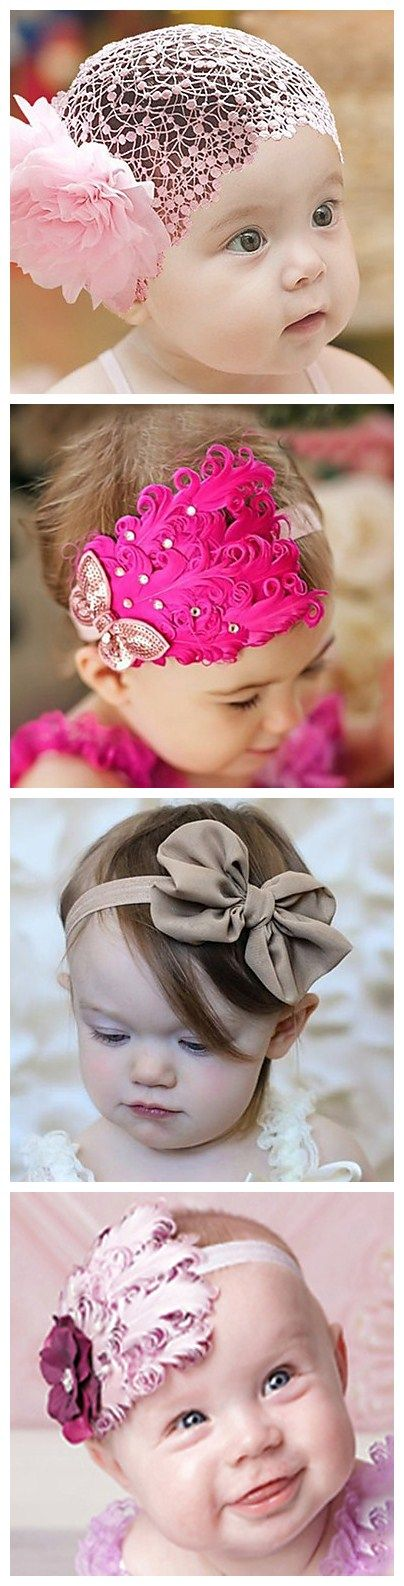 Beautiful headwear and hair accessories for baby girls. Click for even more choices!